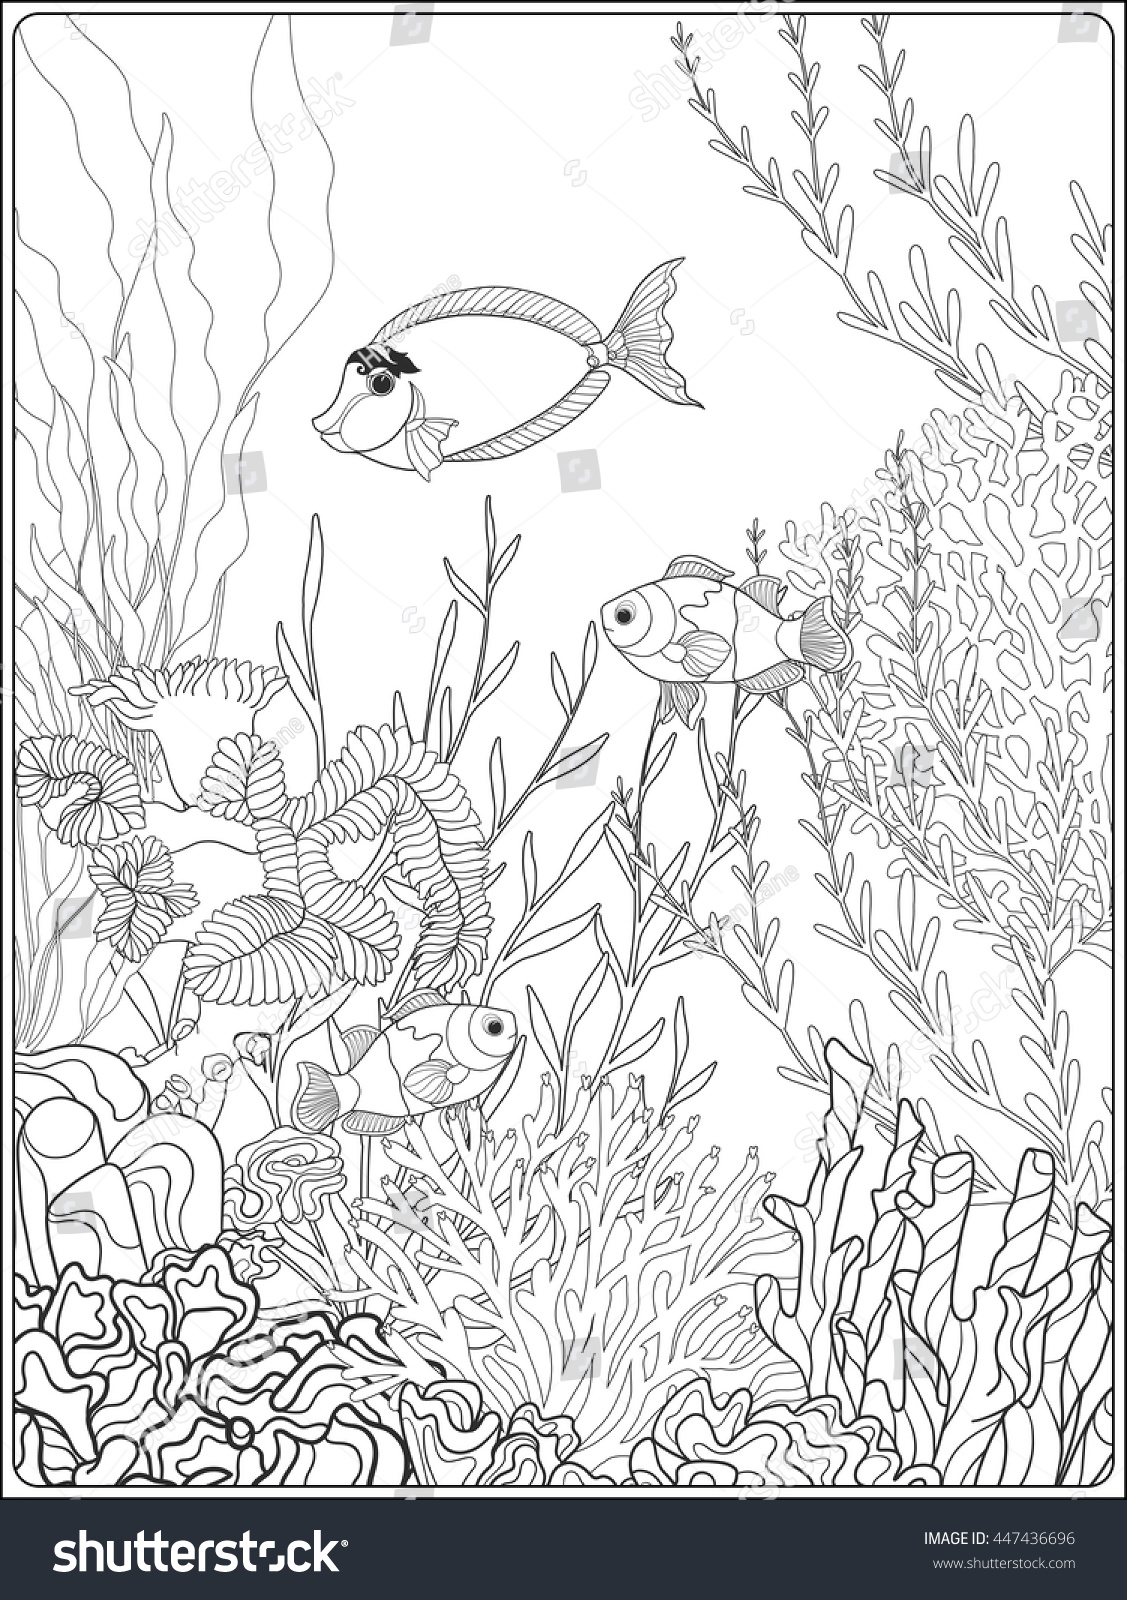 Adult Coloring Book Coloring Page Underwater Stock Vector (Royalty ...